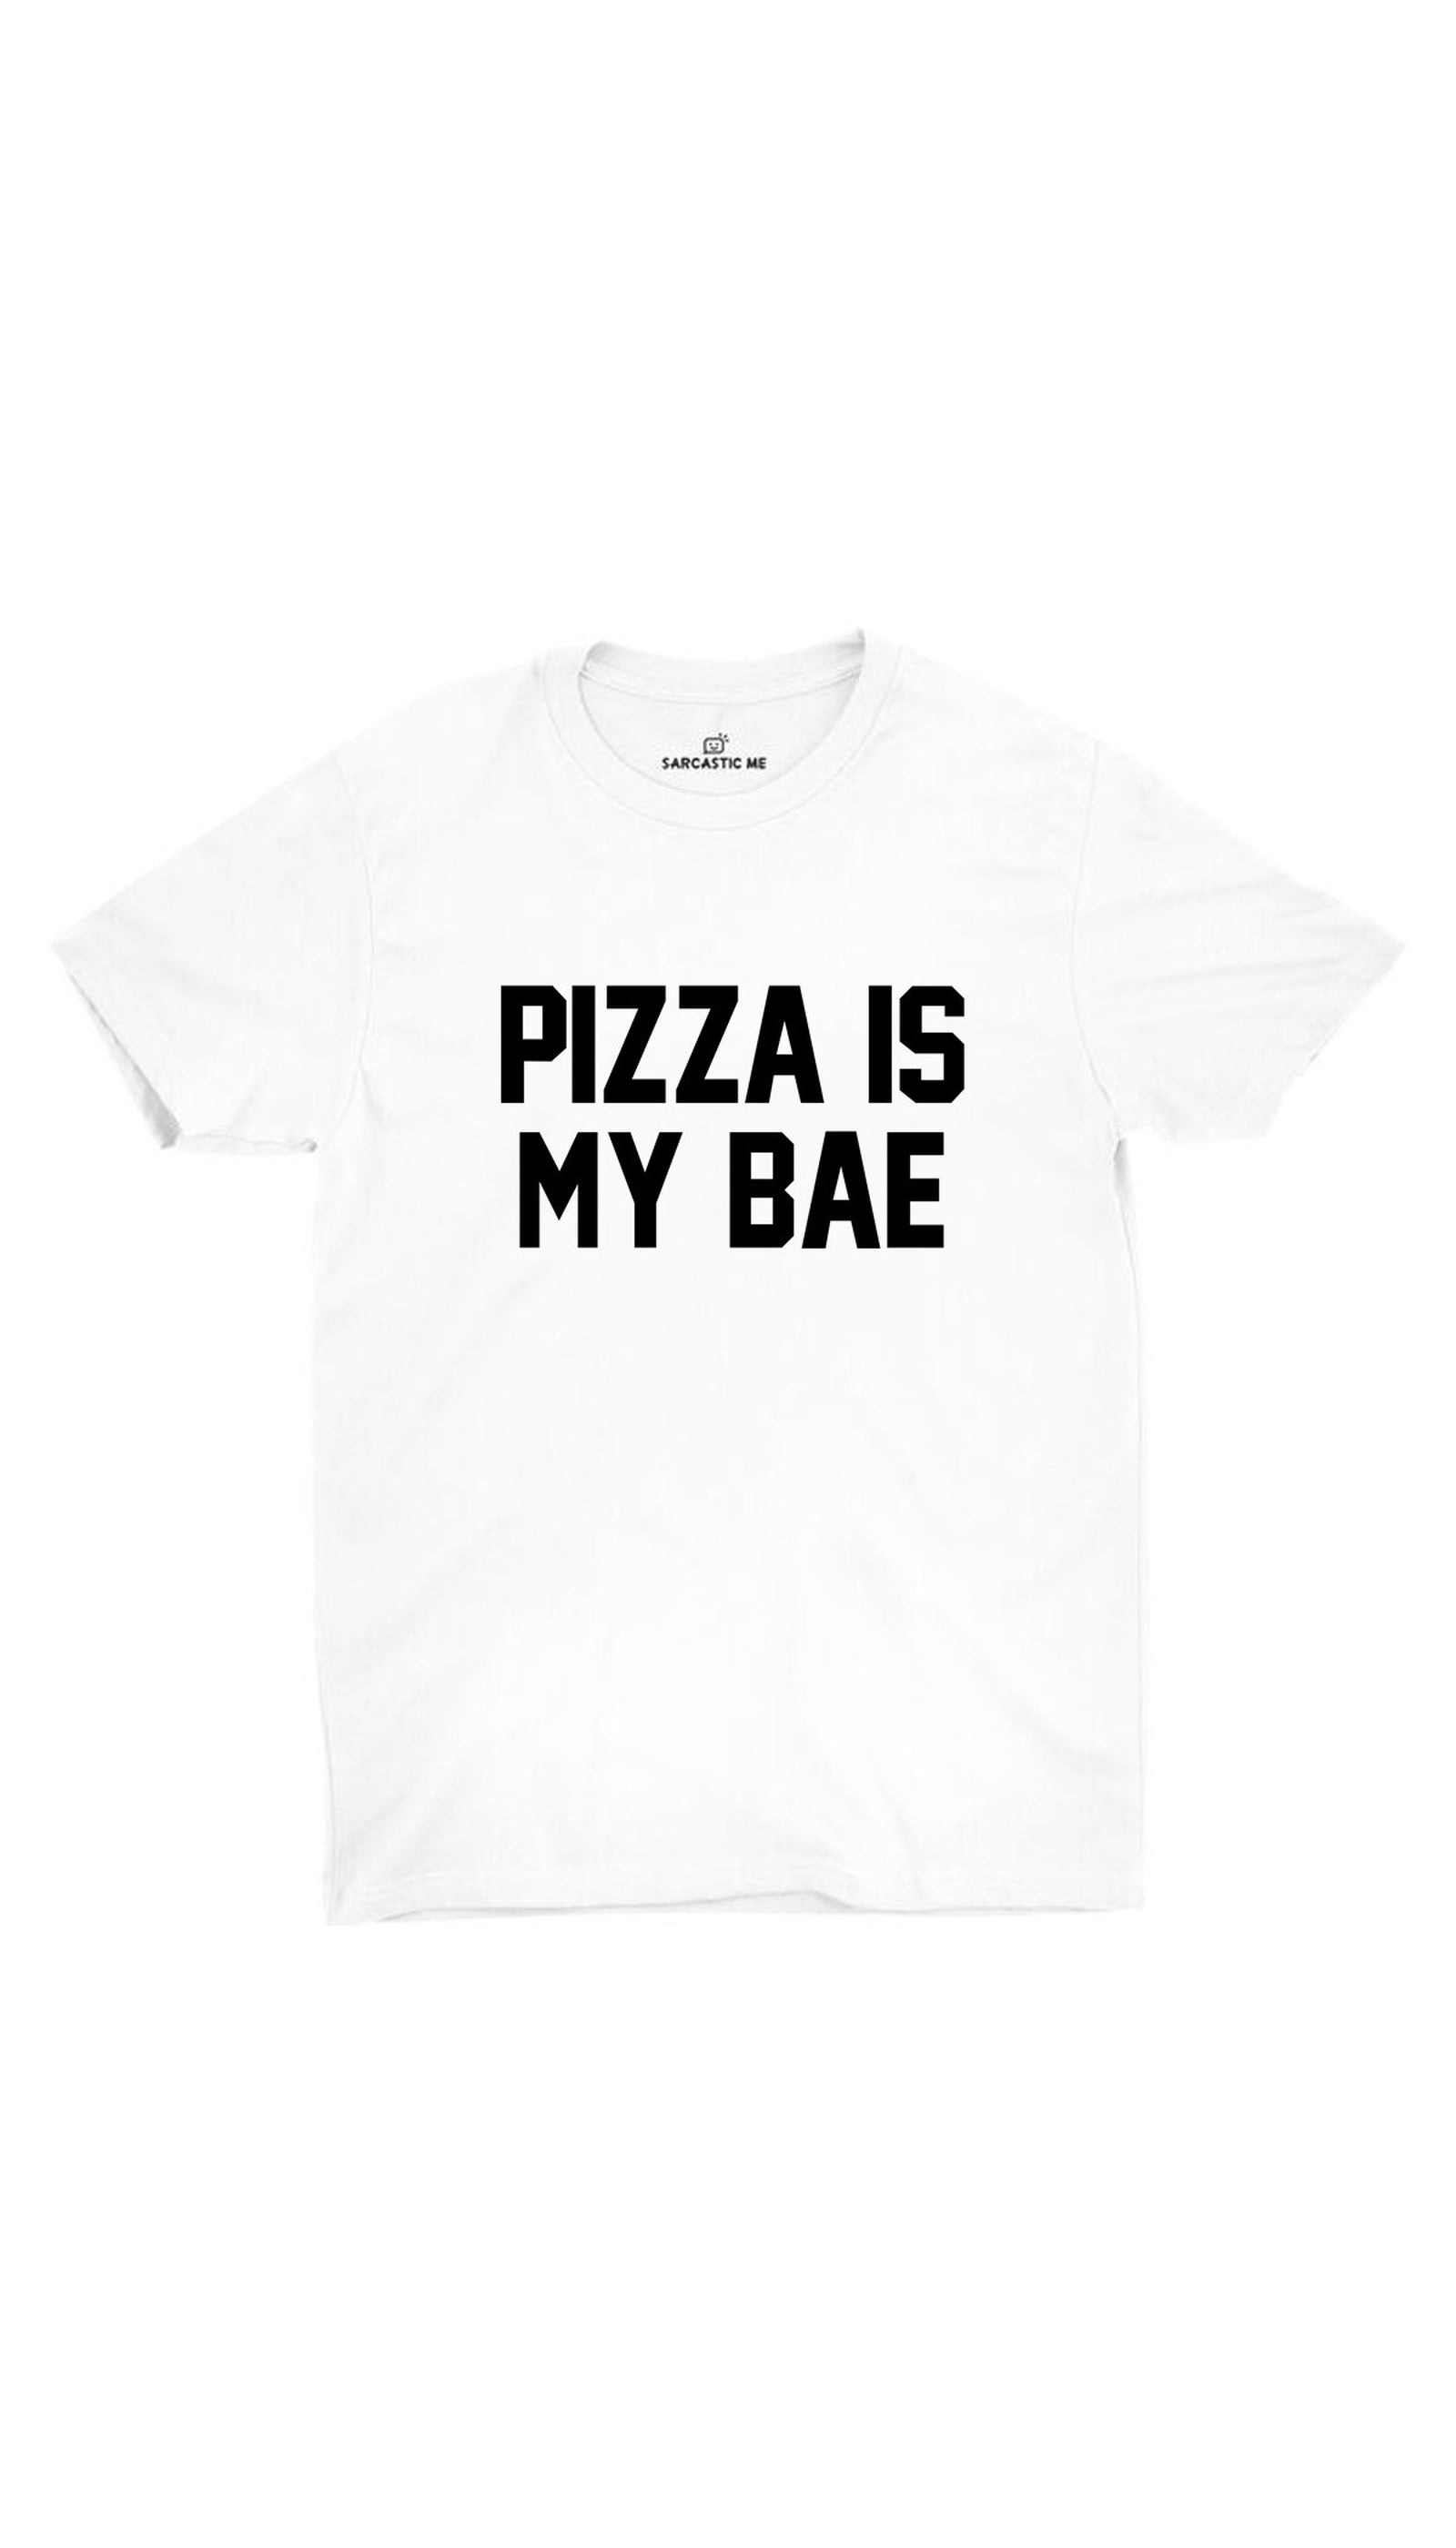 Pizza Is My Bae White Unisex T-shirt | Sarcastic ME